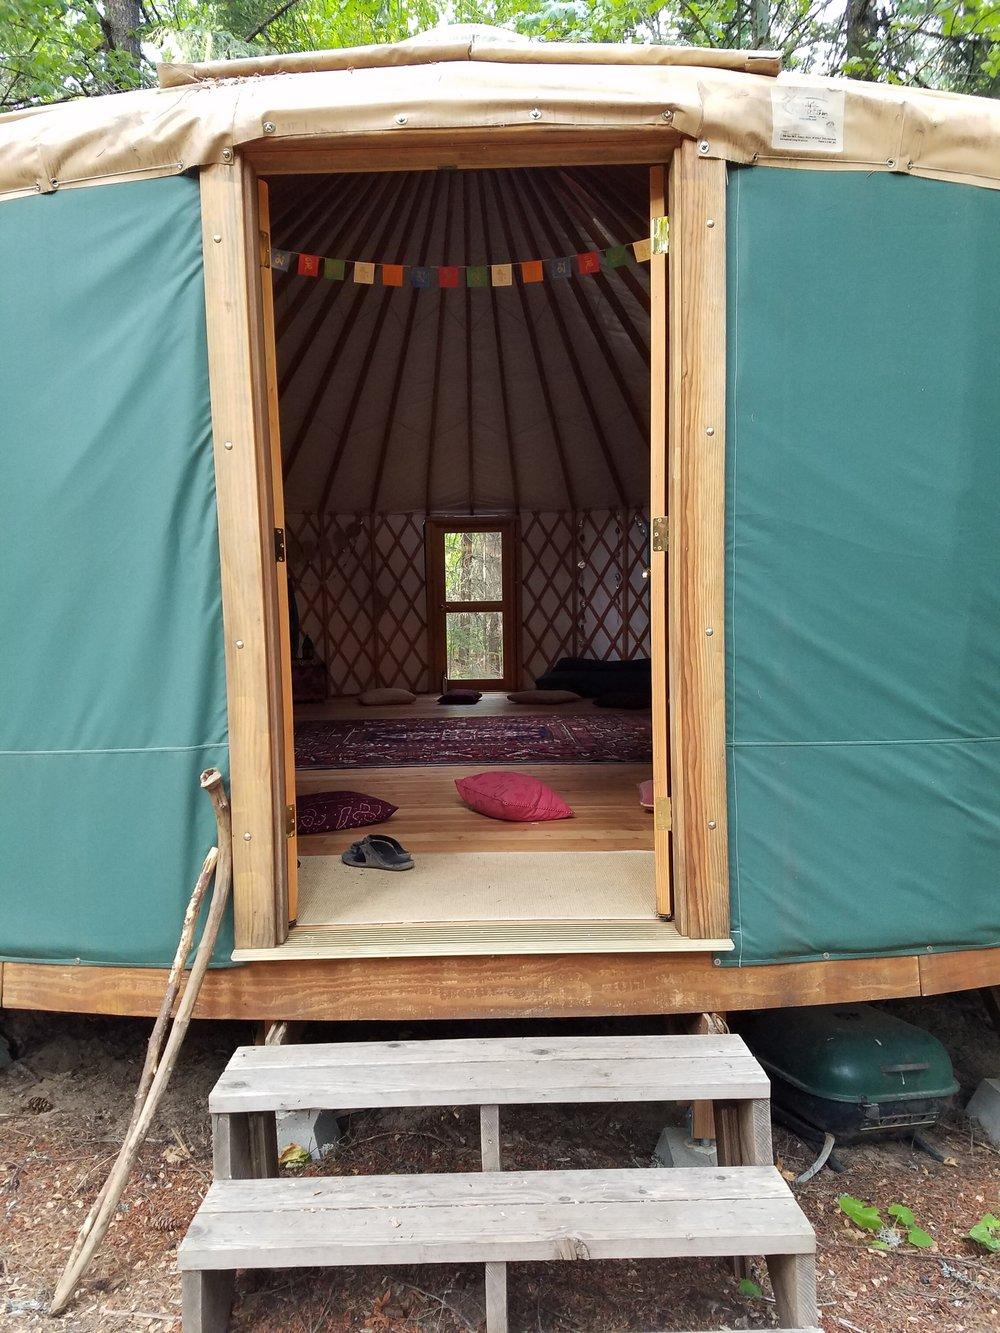 Atlan Forest Yurt.jpg